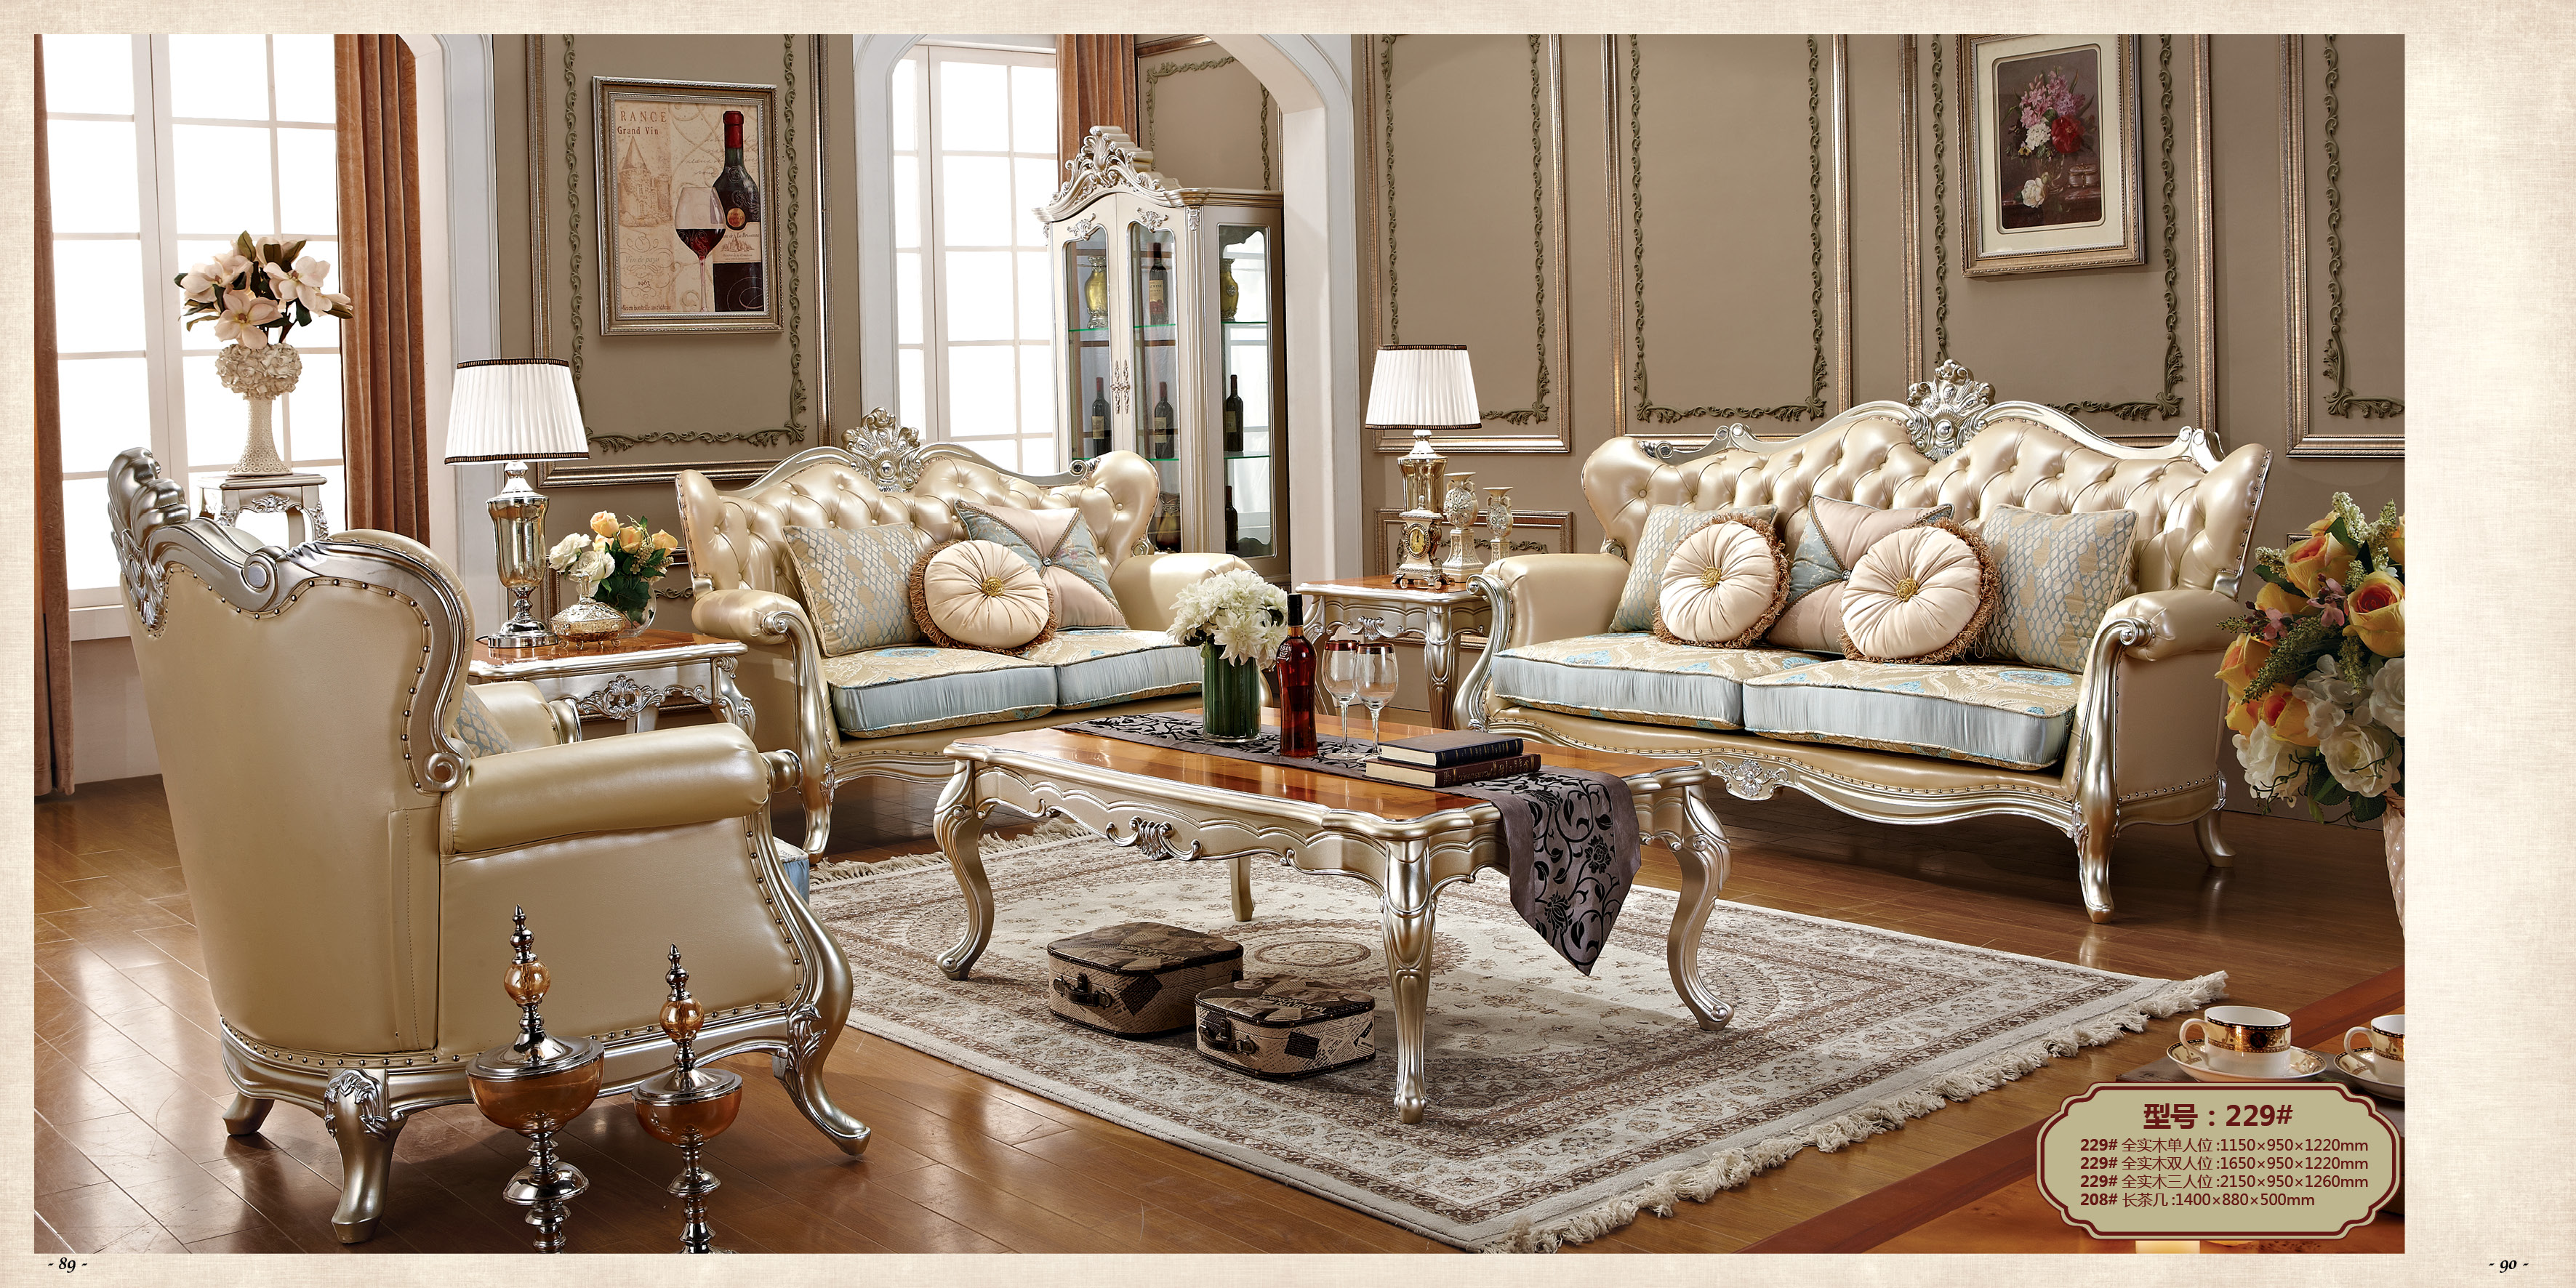 Factory wholesale luxury top quality genuine leather sofa set living room furniture camas 4